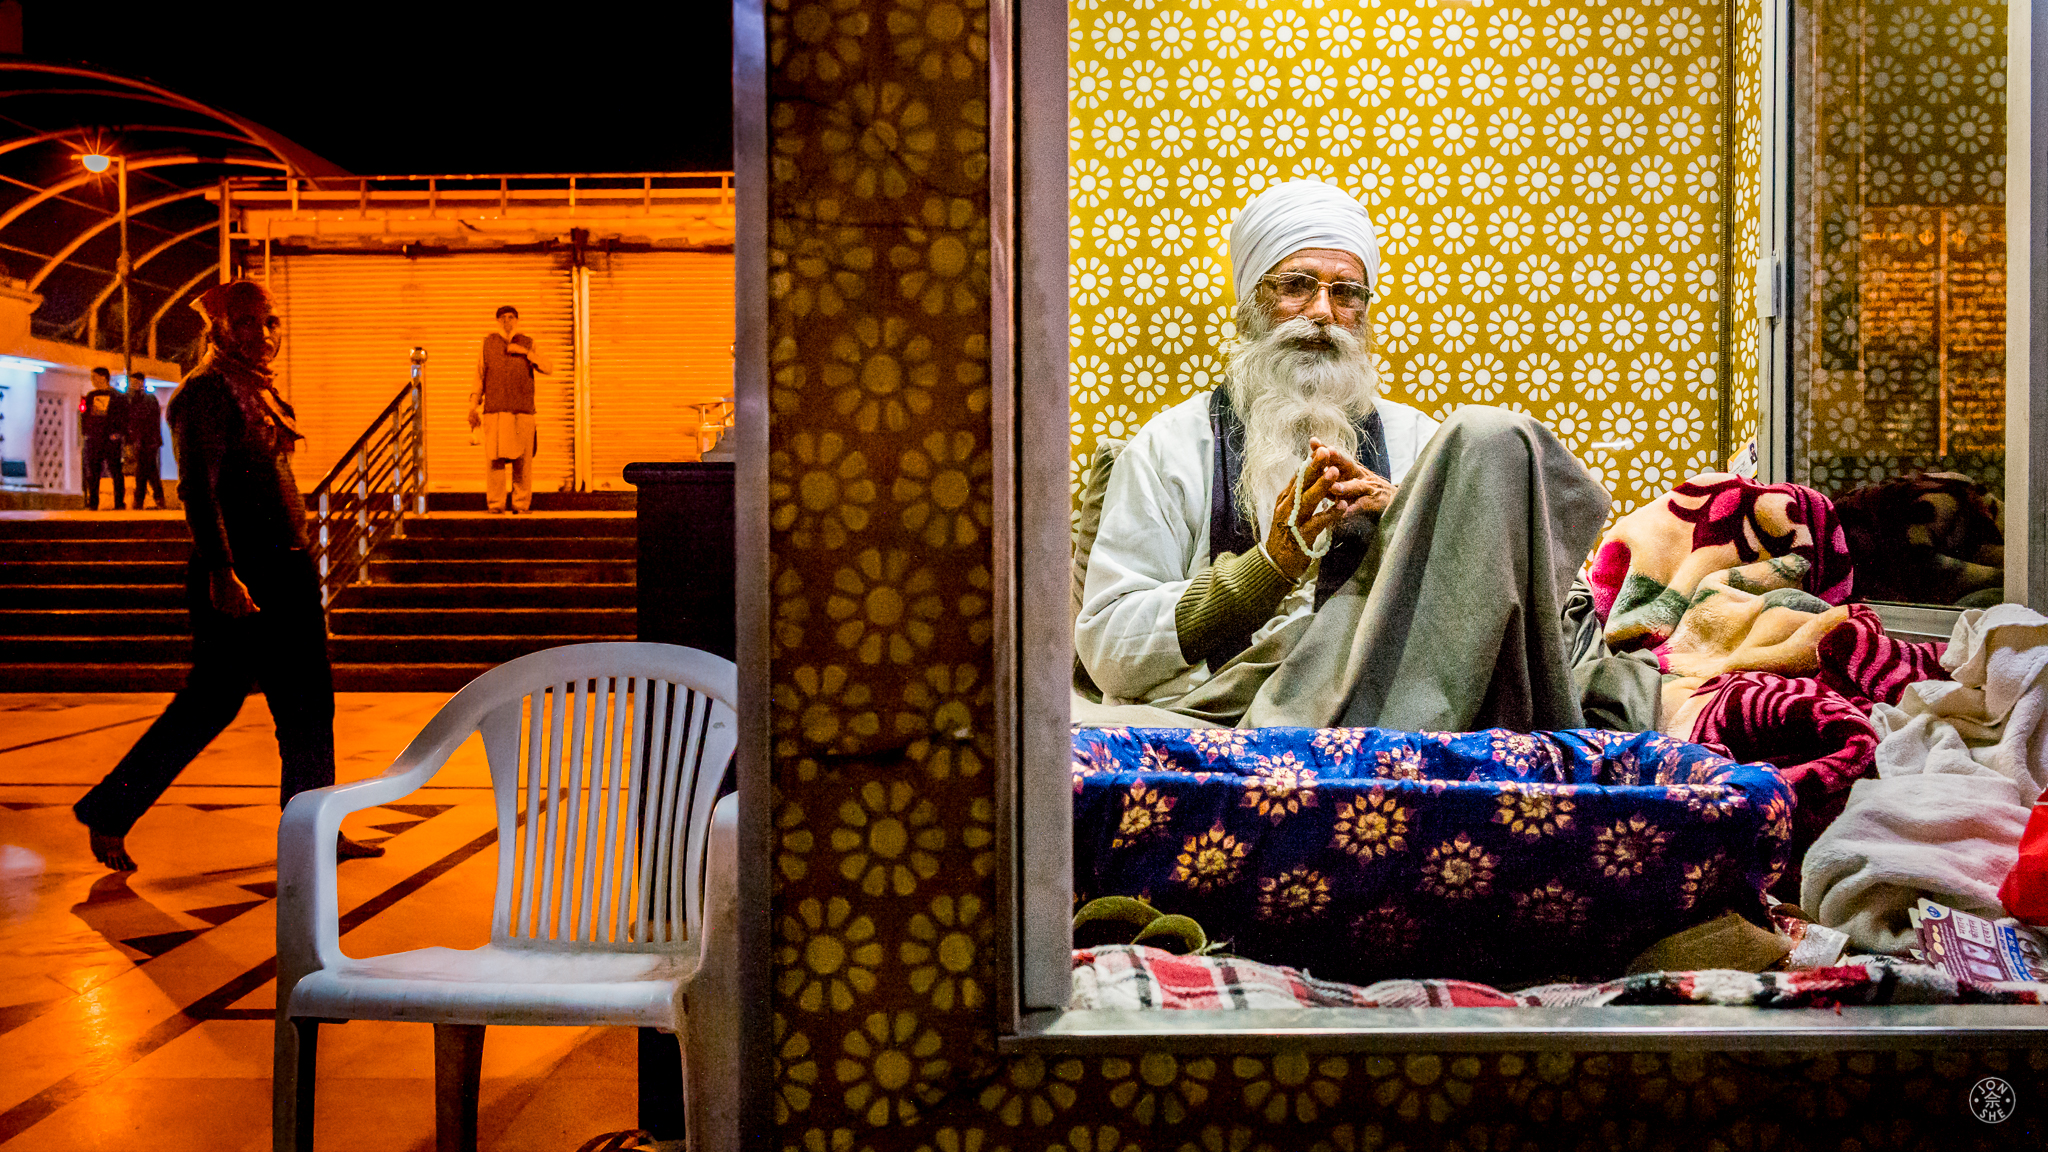 """The Sikh in the Window"".  Outside the Gurudwara Bangla Sahib, Old Delhi, India. January 2017. © Jon She. Leica M10, Leica Summilux 28mm f/1.4 ASPH."